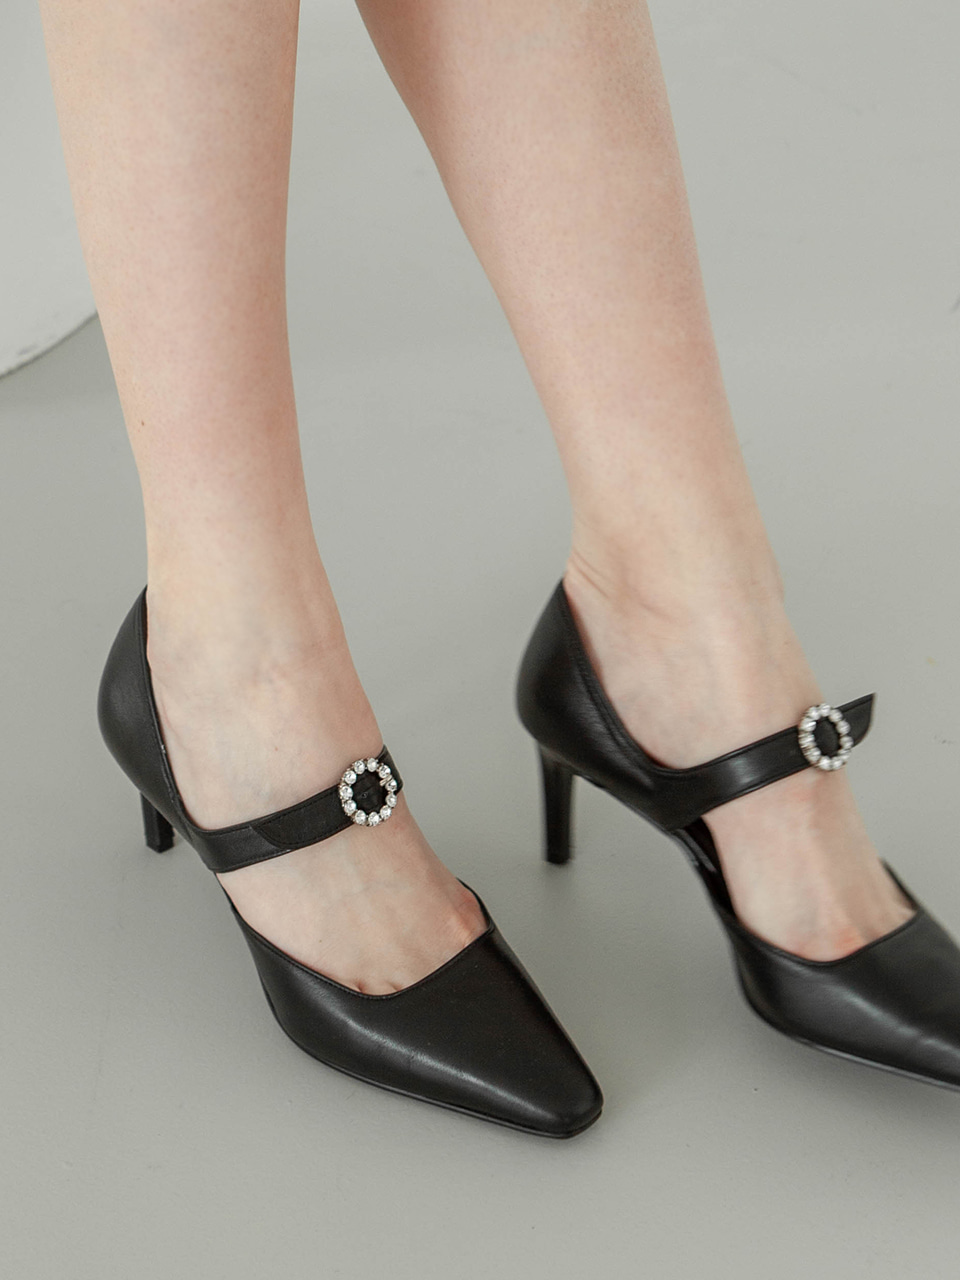 Mrc053 Blooming Pumps (Black)